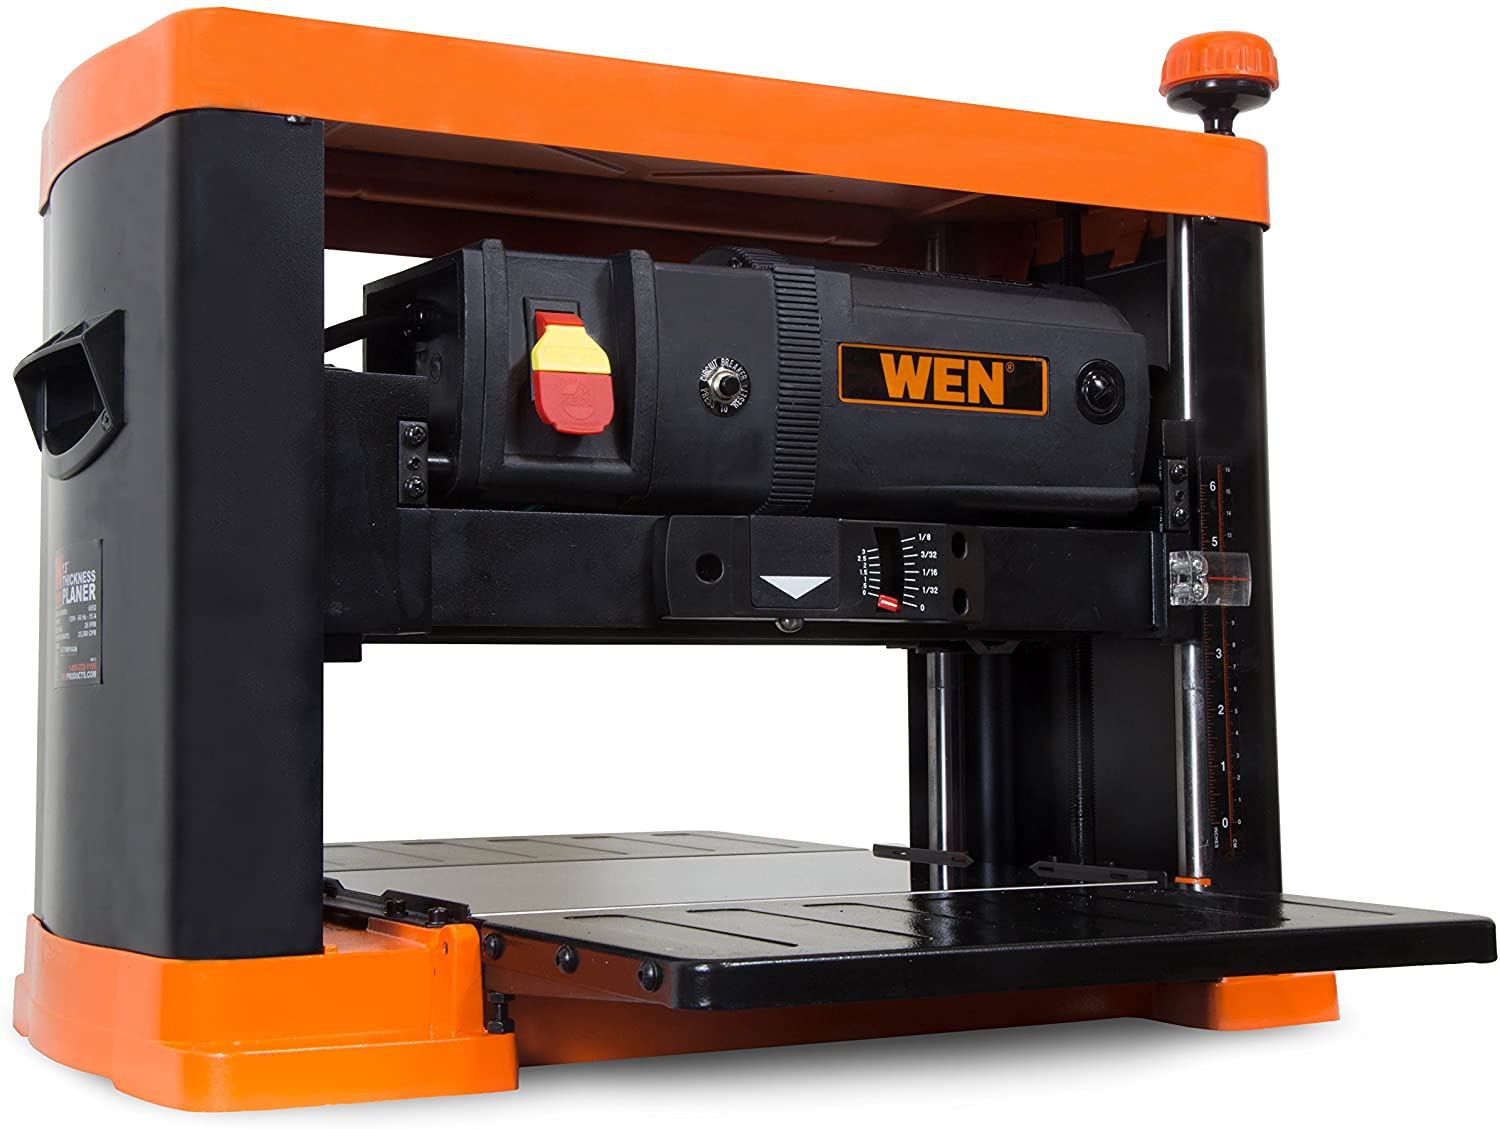 Wen 6552T 13-Inch Thickness Wood Planer